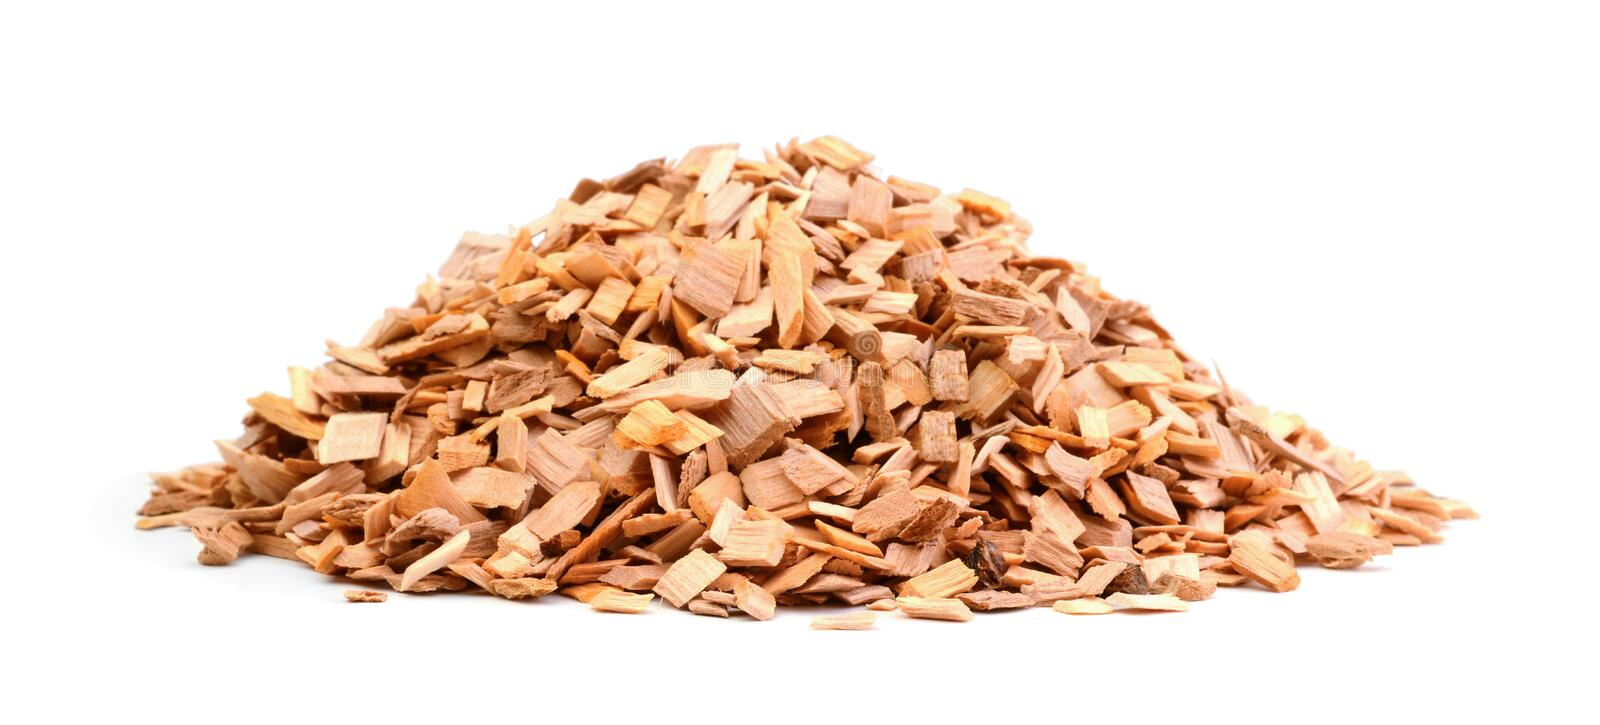 Wood chips isolated on white royalty free stock photos